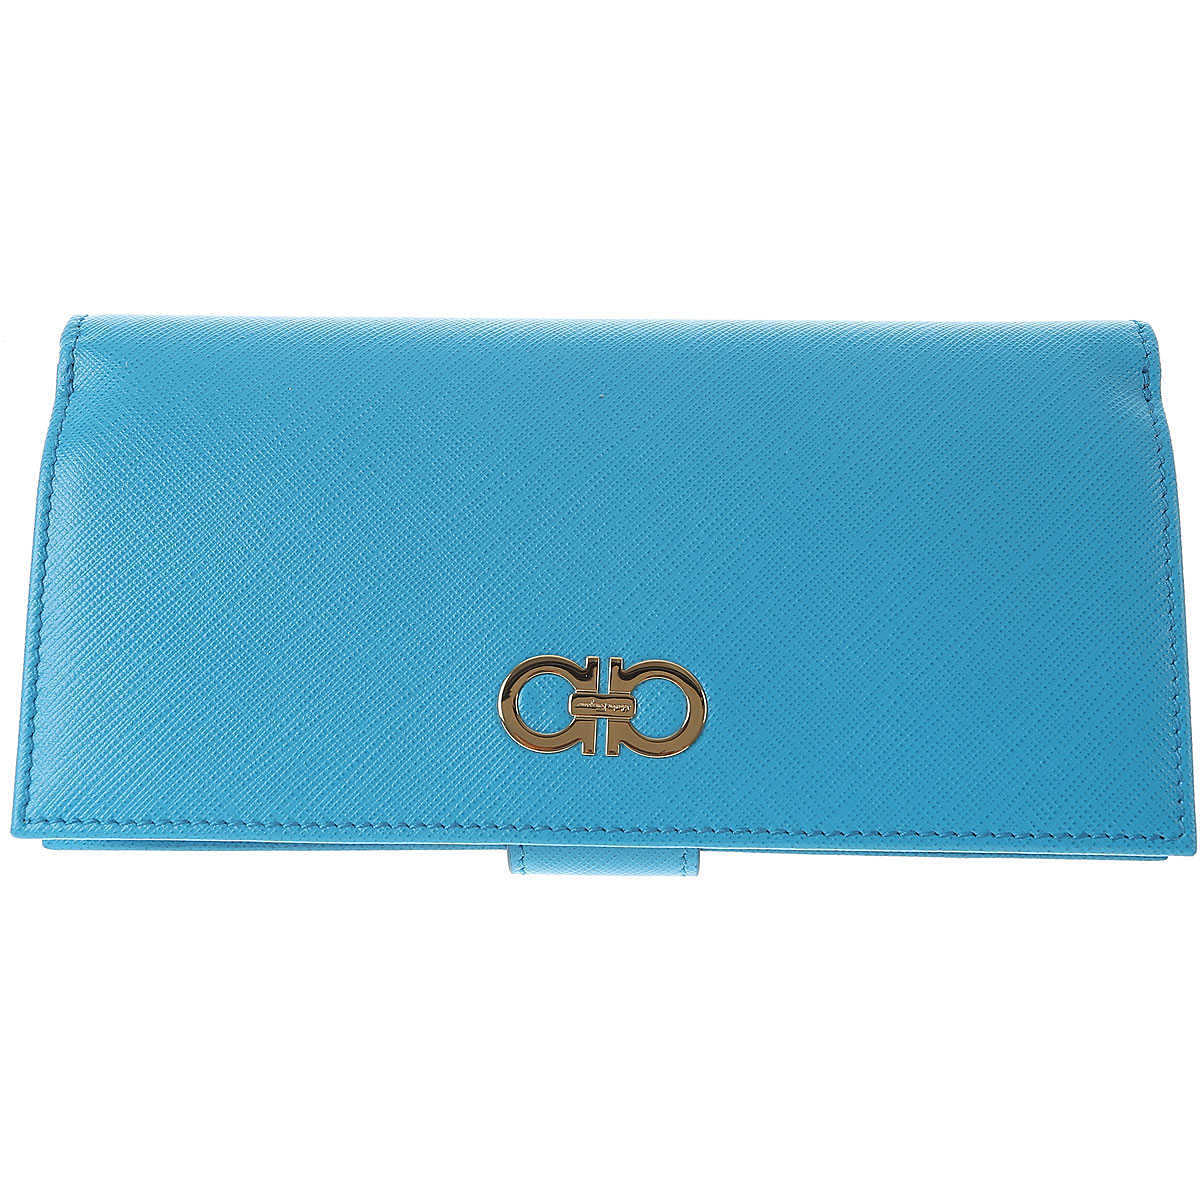 Salvatore Ferragamo Wallet for Women On Sale in Outlet Turquoise UK - GOOFASH